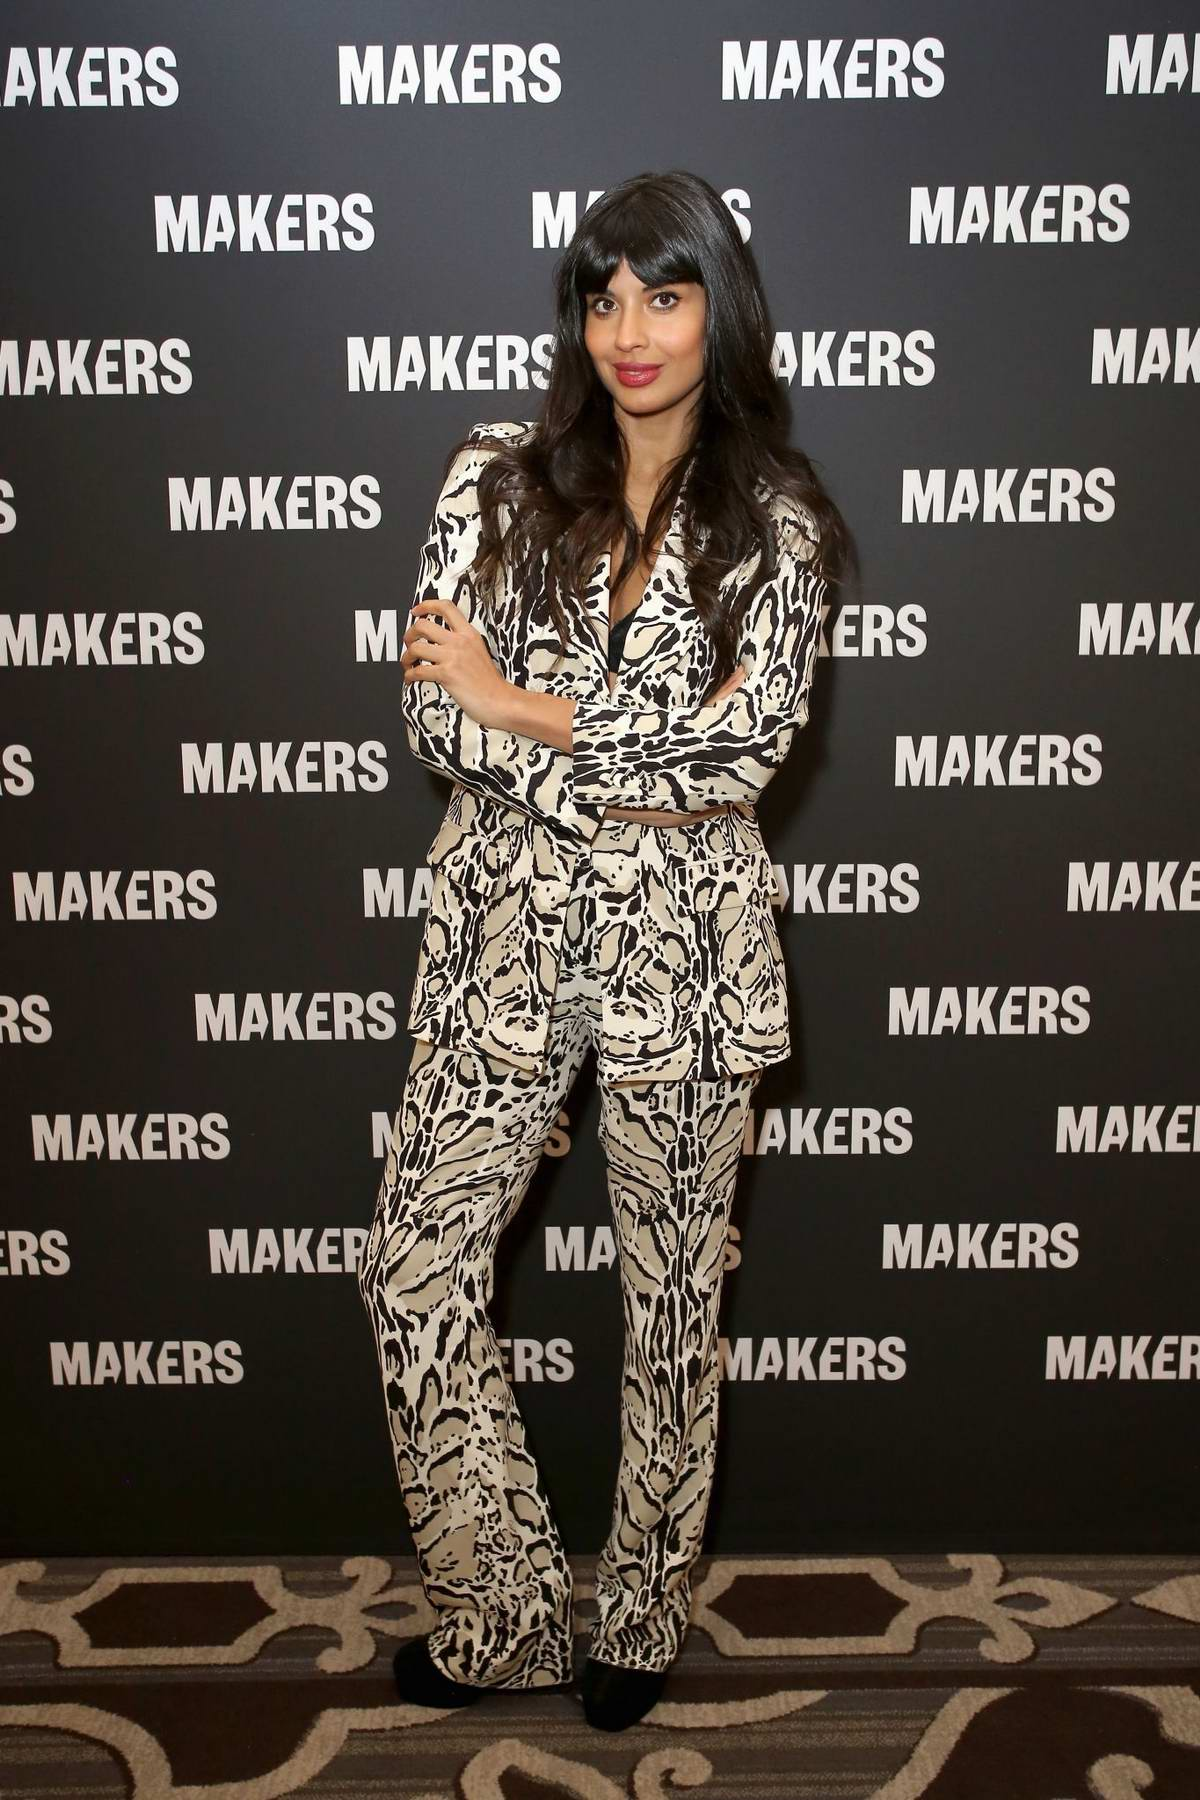 Jameela Jamil attends The 2019 MAKERS Conference at Monarch Beach Resort in Dana Point, California